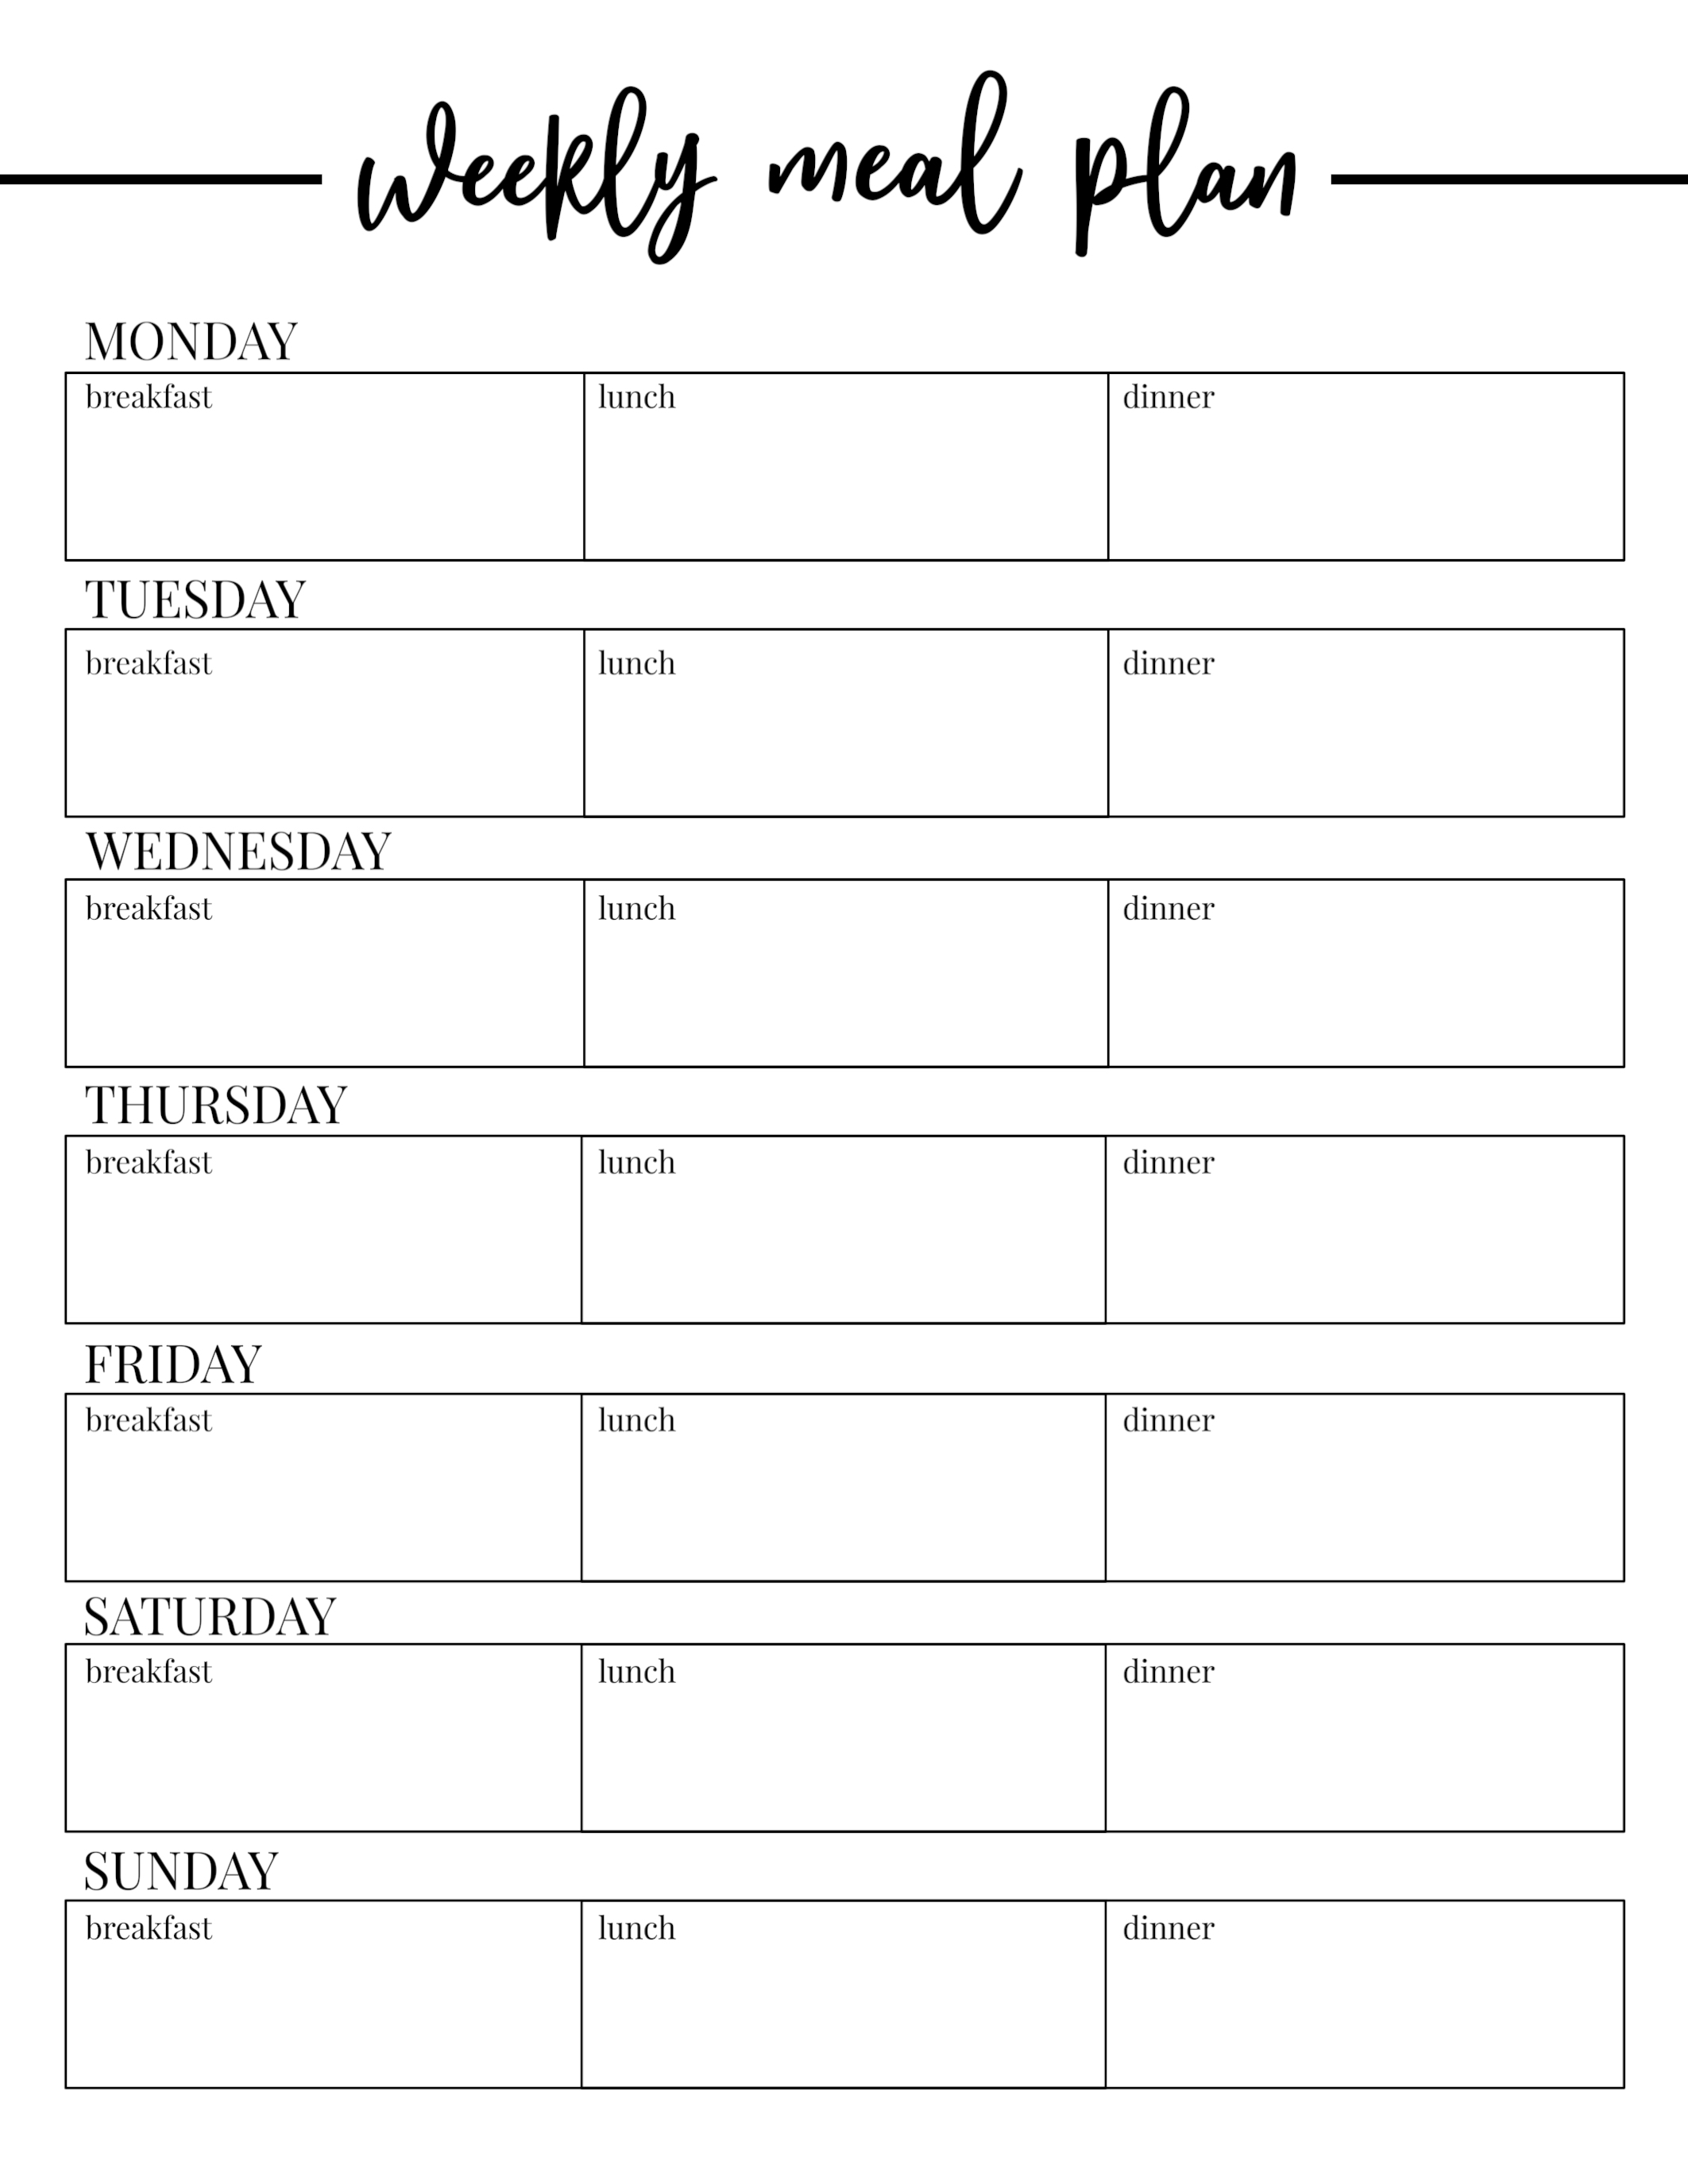 003 Daily Meal Plan Template Weekly Phenomenal Ideas Eating Throughout Menu Planning Template Word